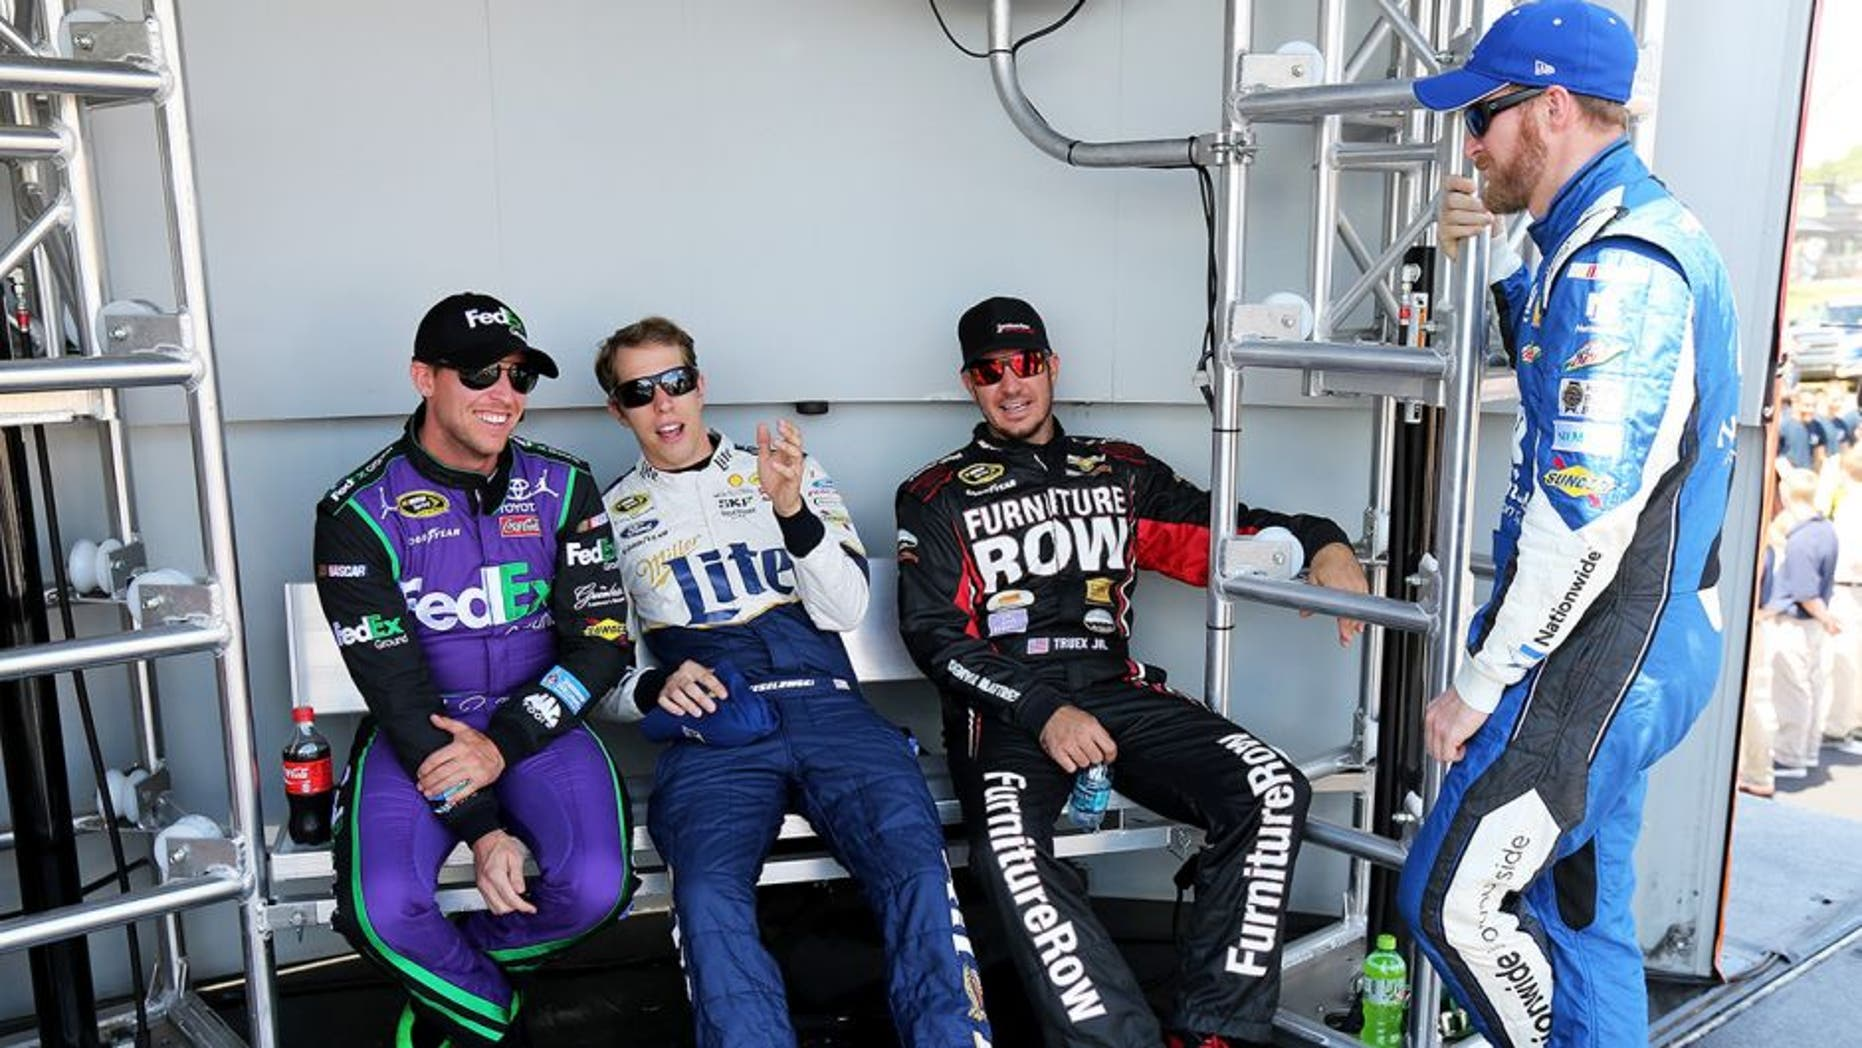 WATKINS GLEN, NY - AUGUST 09: (L-R) Denny Hamlin, driver of the #11 FedEx Ground Toyota, Brad Keselowski, driver of the #2 Miller Lite/Luke Bryan Ford, Martin Truex Jr., driver of the #78 Furniture Row/Visser Precision Chevrolet, and Dale Earnhardt Jr., driver of the #88 Nationwide Chevrolet, talk behind stage prior to the NASCAR Sprint Cup Series Cheez-It 355 at the Glen at Watkins Glen International on August 9, 2015 in Watkins Glen, New York. (Photo by Jerry Markland/Getty Images)